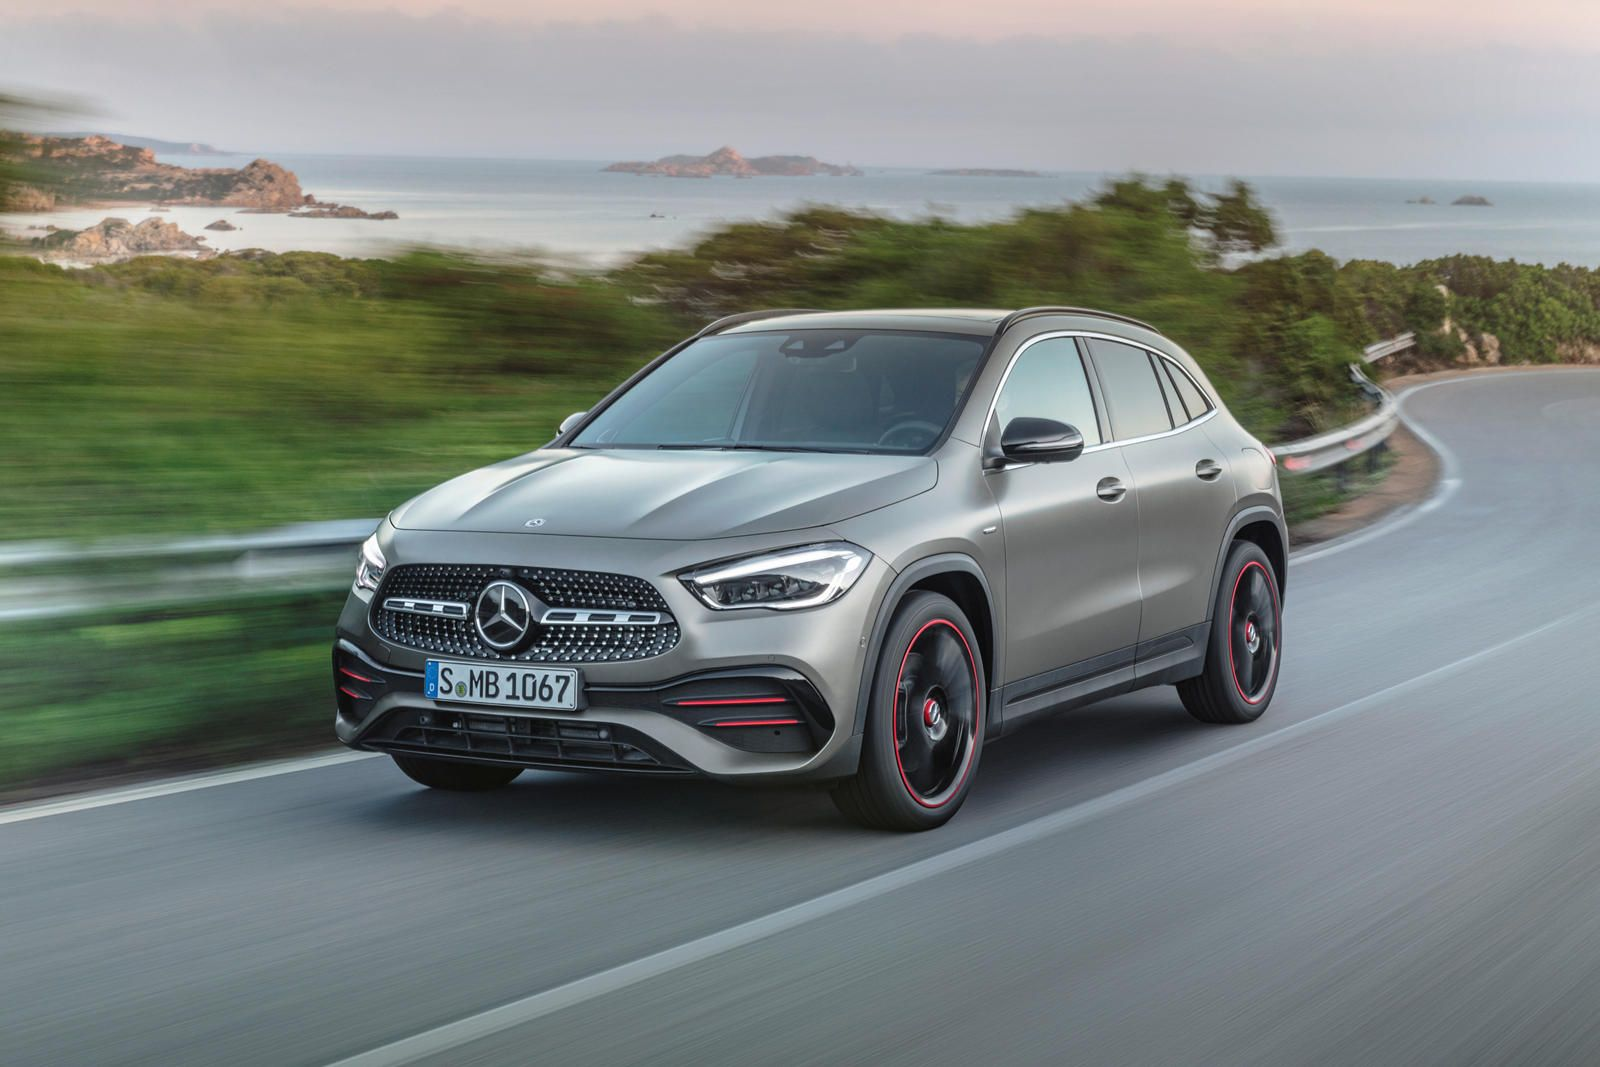 2021 Mercedes Benz Gla First Look Review Defying Expectations